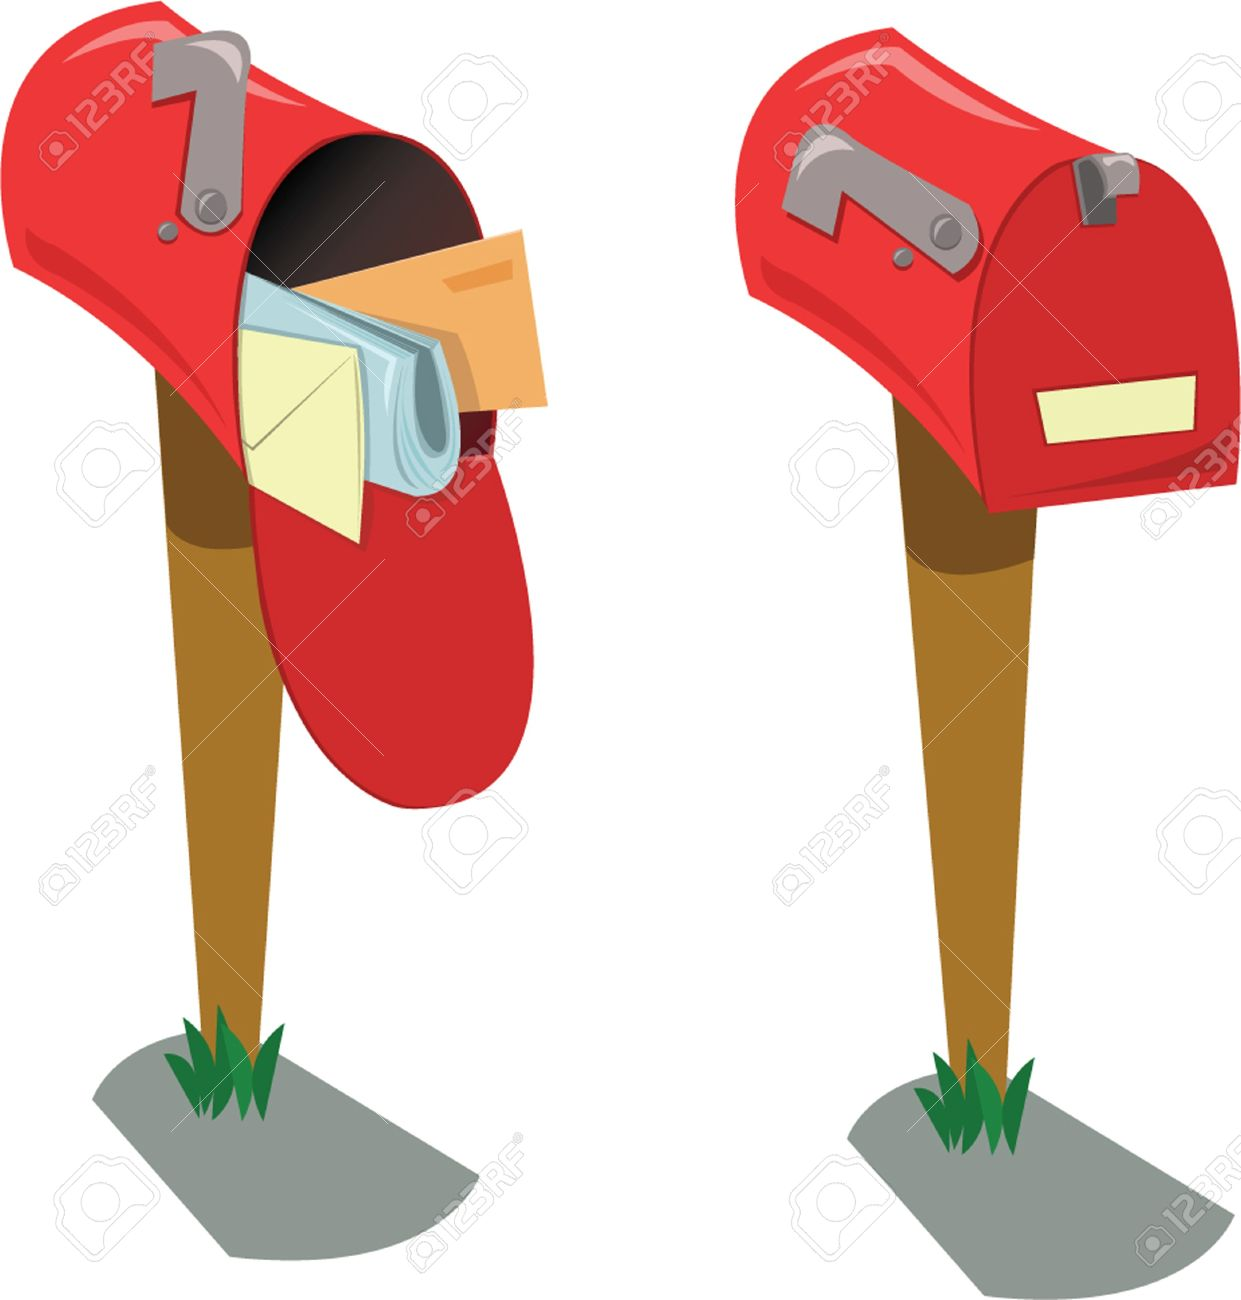 A Cartoon Representing Two Mailboxes The First Opened With Mail